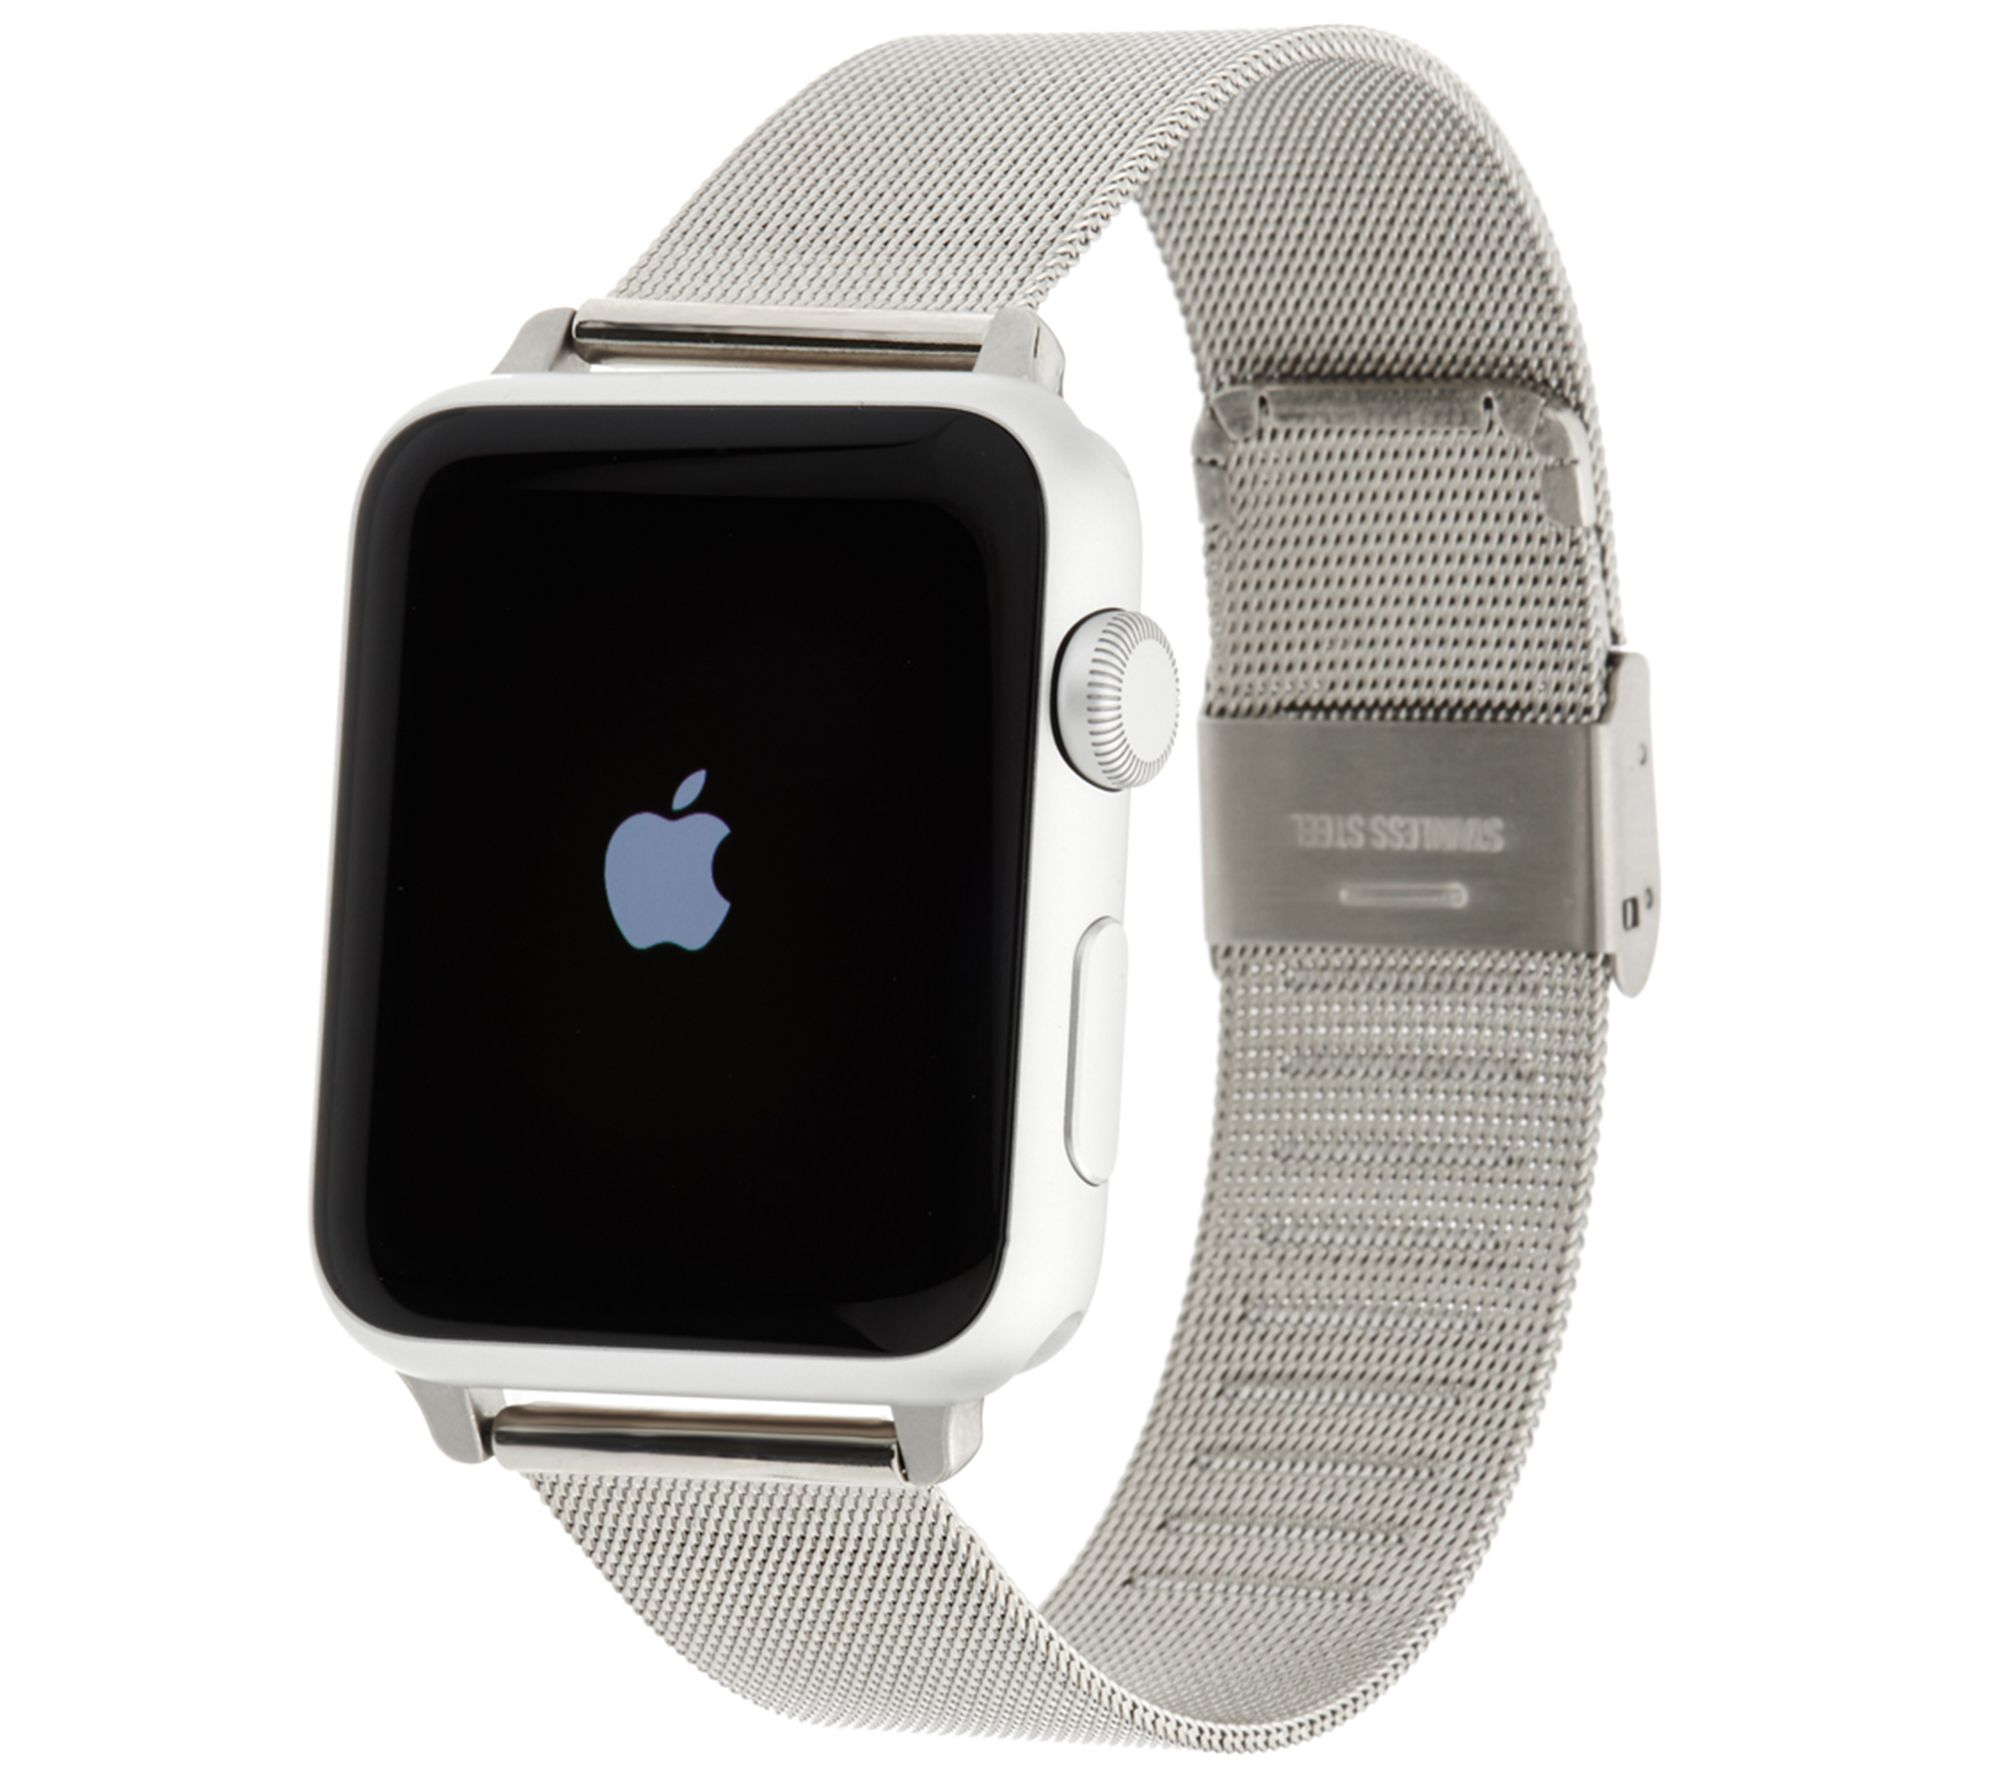 Apple Watch 42mm Face With 2 Additional Bands Stand Software Series Alumunium Sport Smartwatch Rosegold Page 1